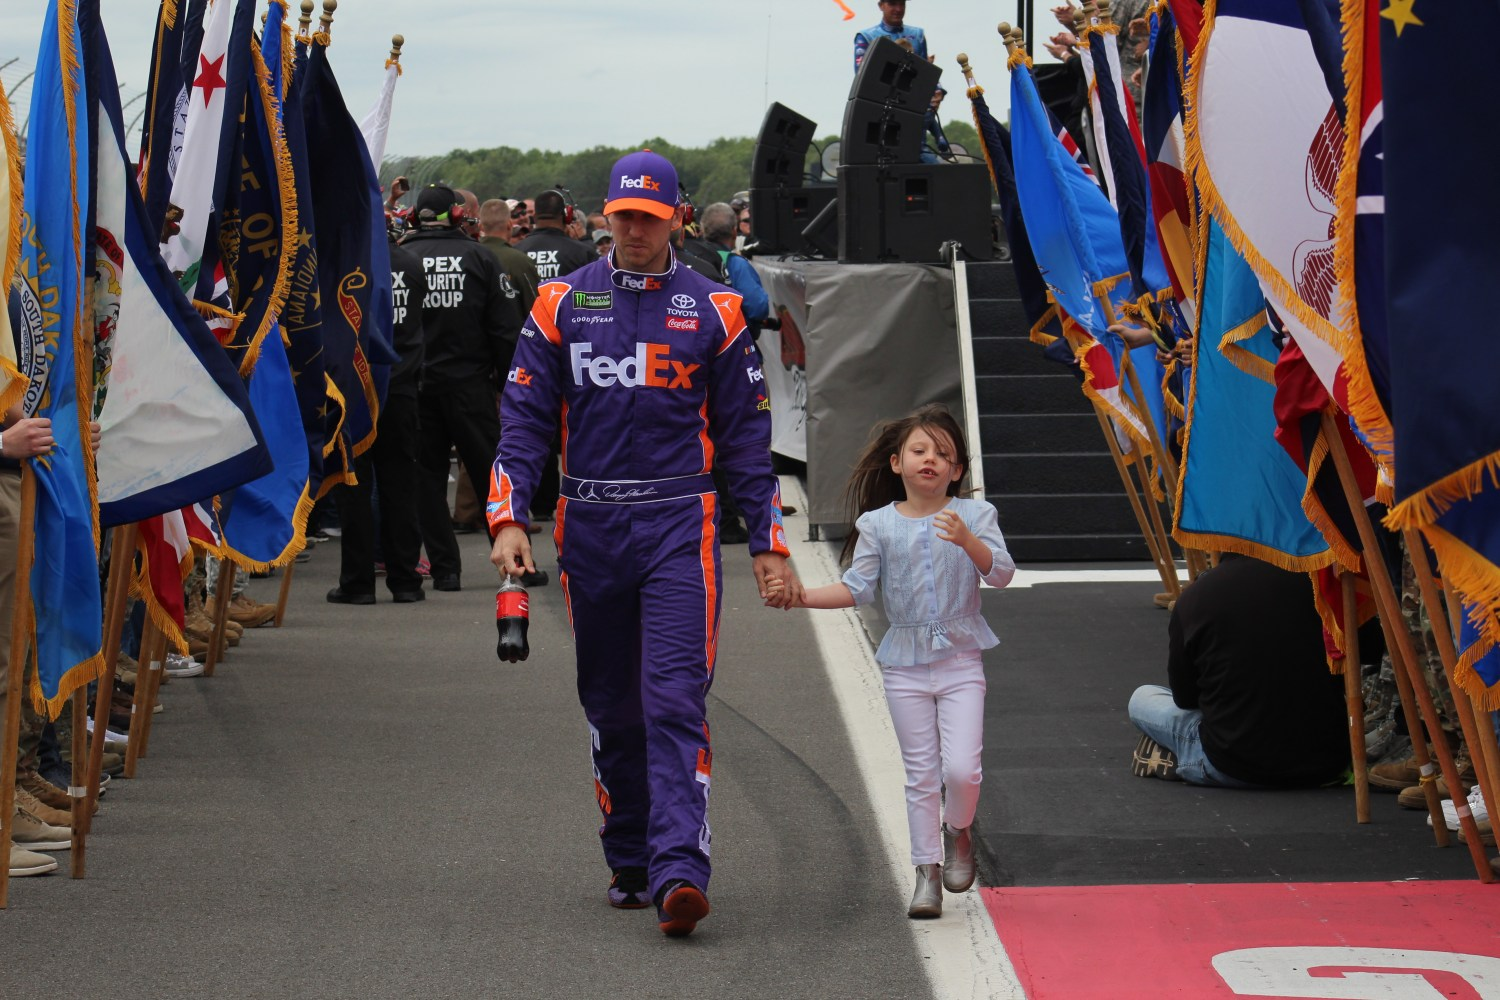 Denny Hamlin walks during driver introductions for the 2018 Pocono 400. (Tyler Head | The Racing Experts)